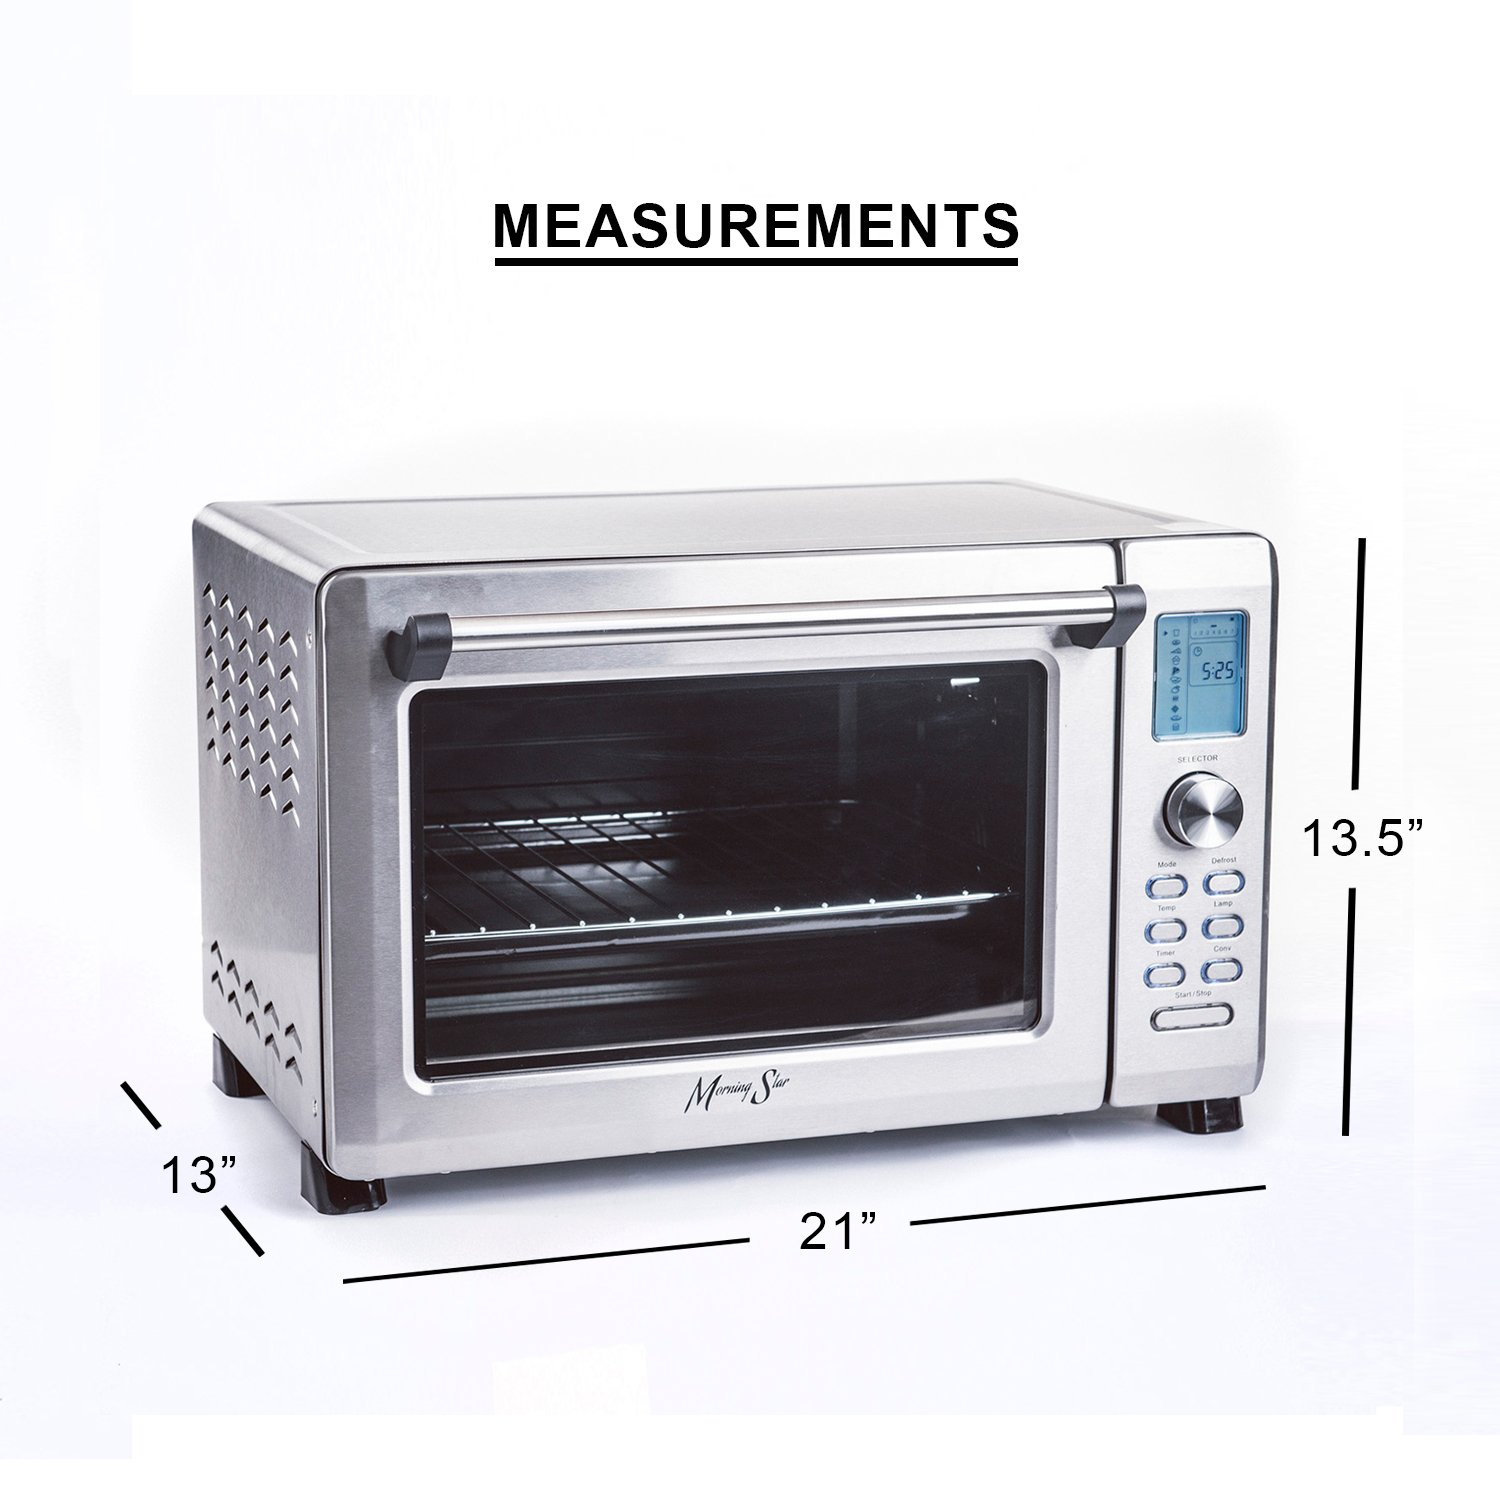 amazoncom morning star  extra large  infrared (no preheat  - amazoncom morning star  extra large  infrared (no preheat needed) convection countertop digital toaster oven stainless steel xlxx